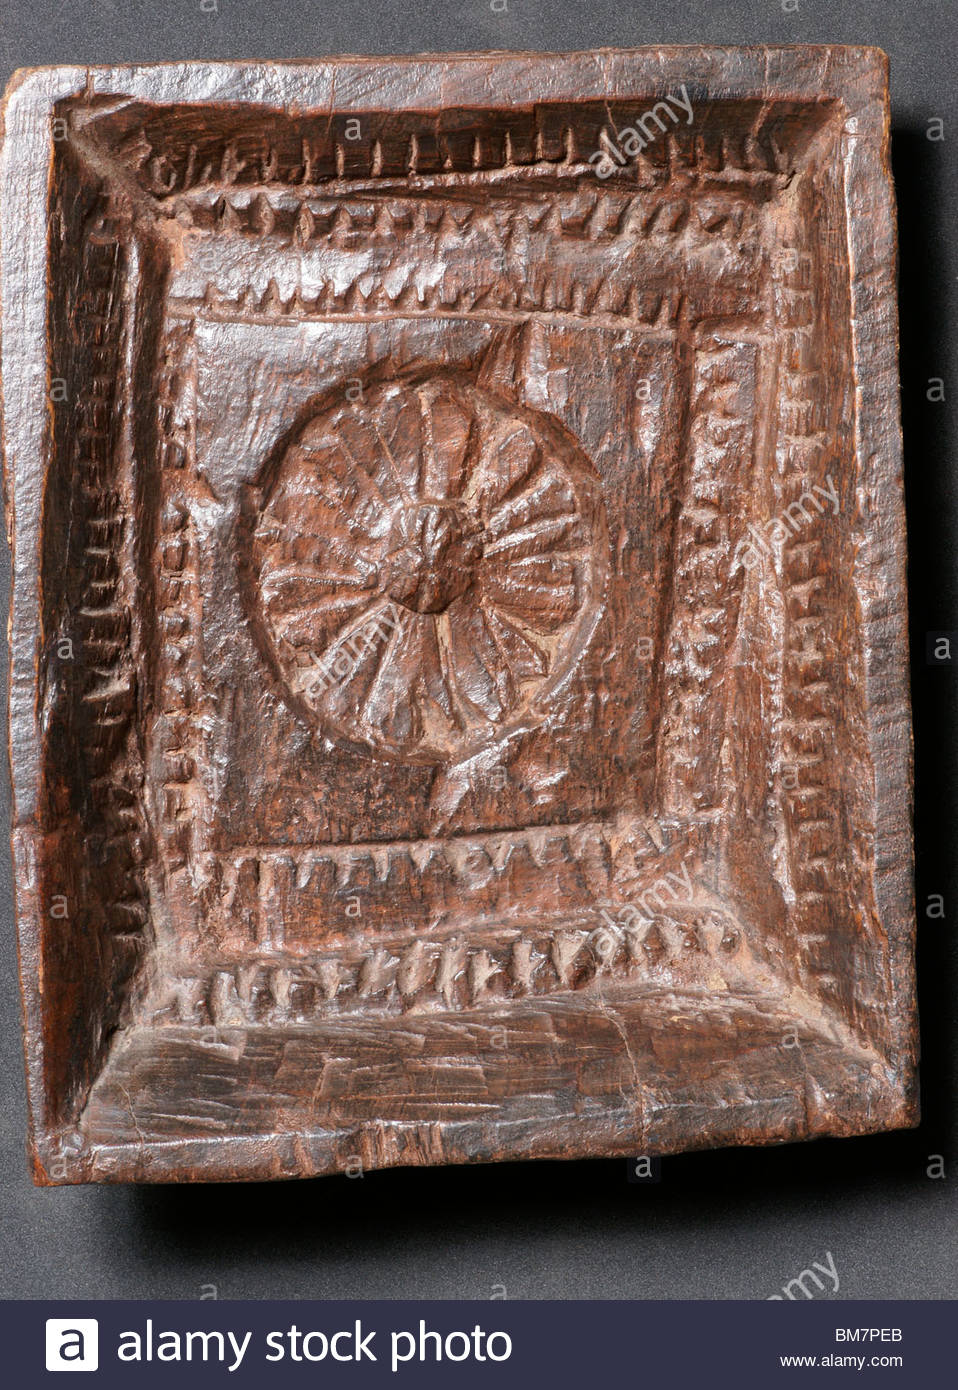 Antique furniture wooden carving - possibly from India - Stock Image